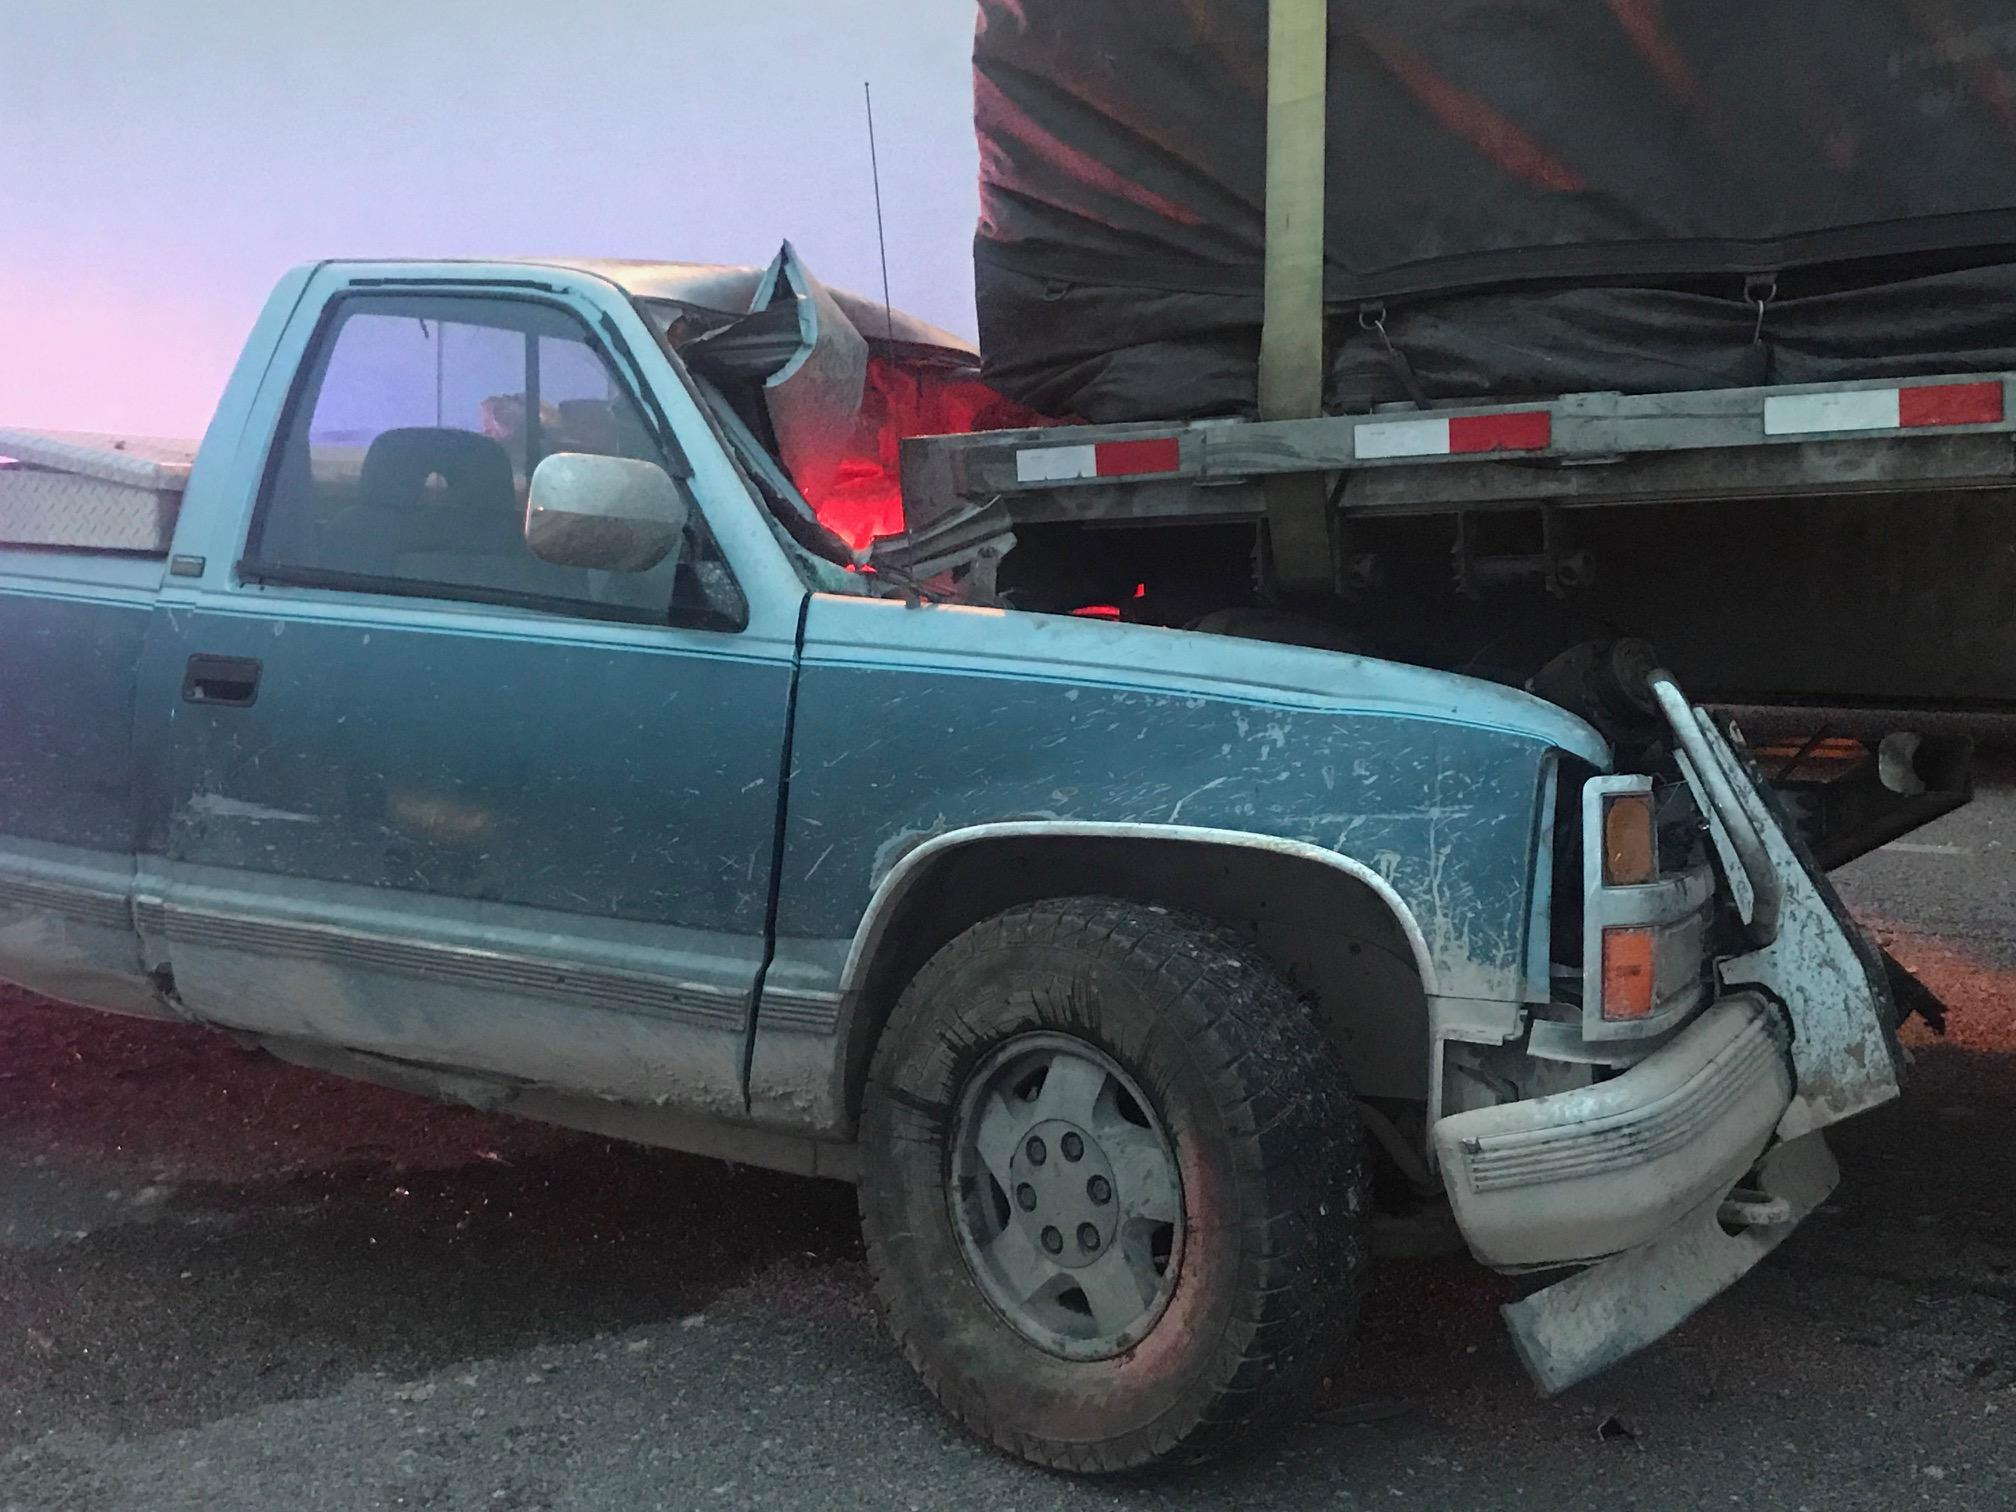 The driver of the pickup was transported to the hospital as a precaution.